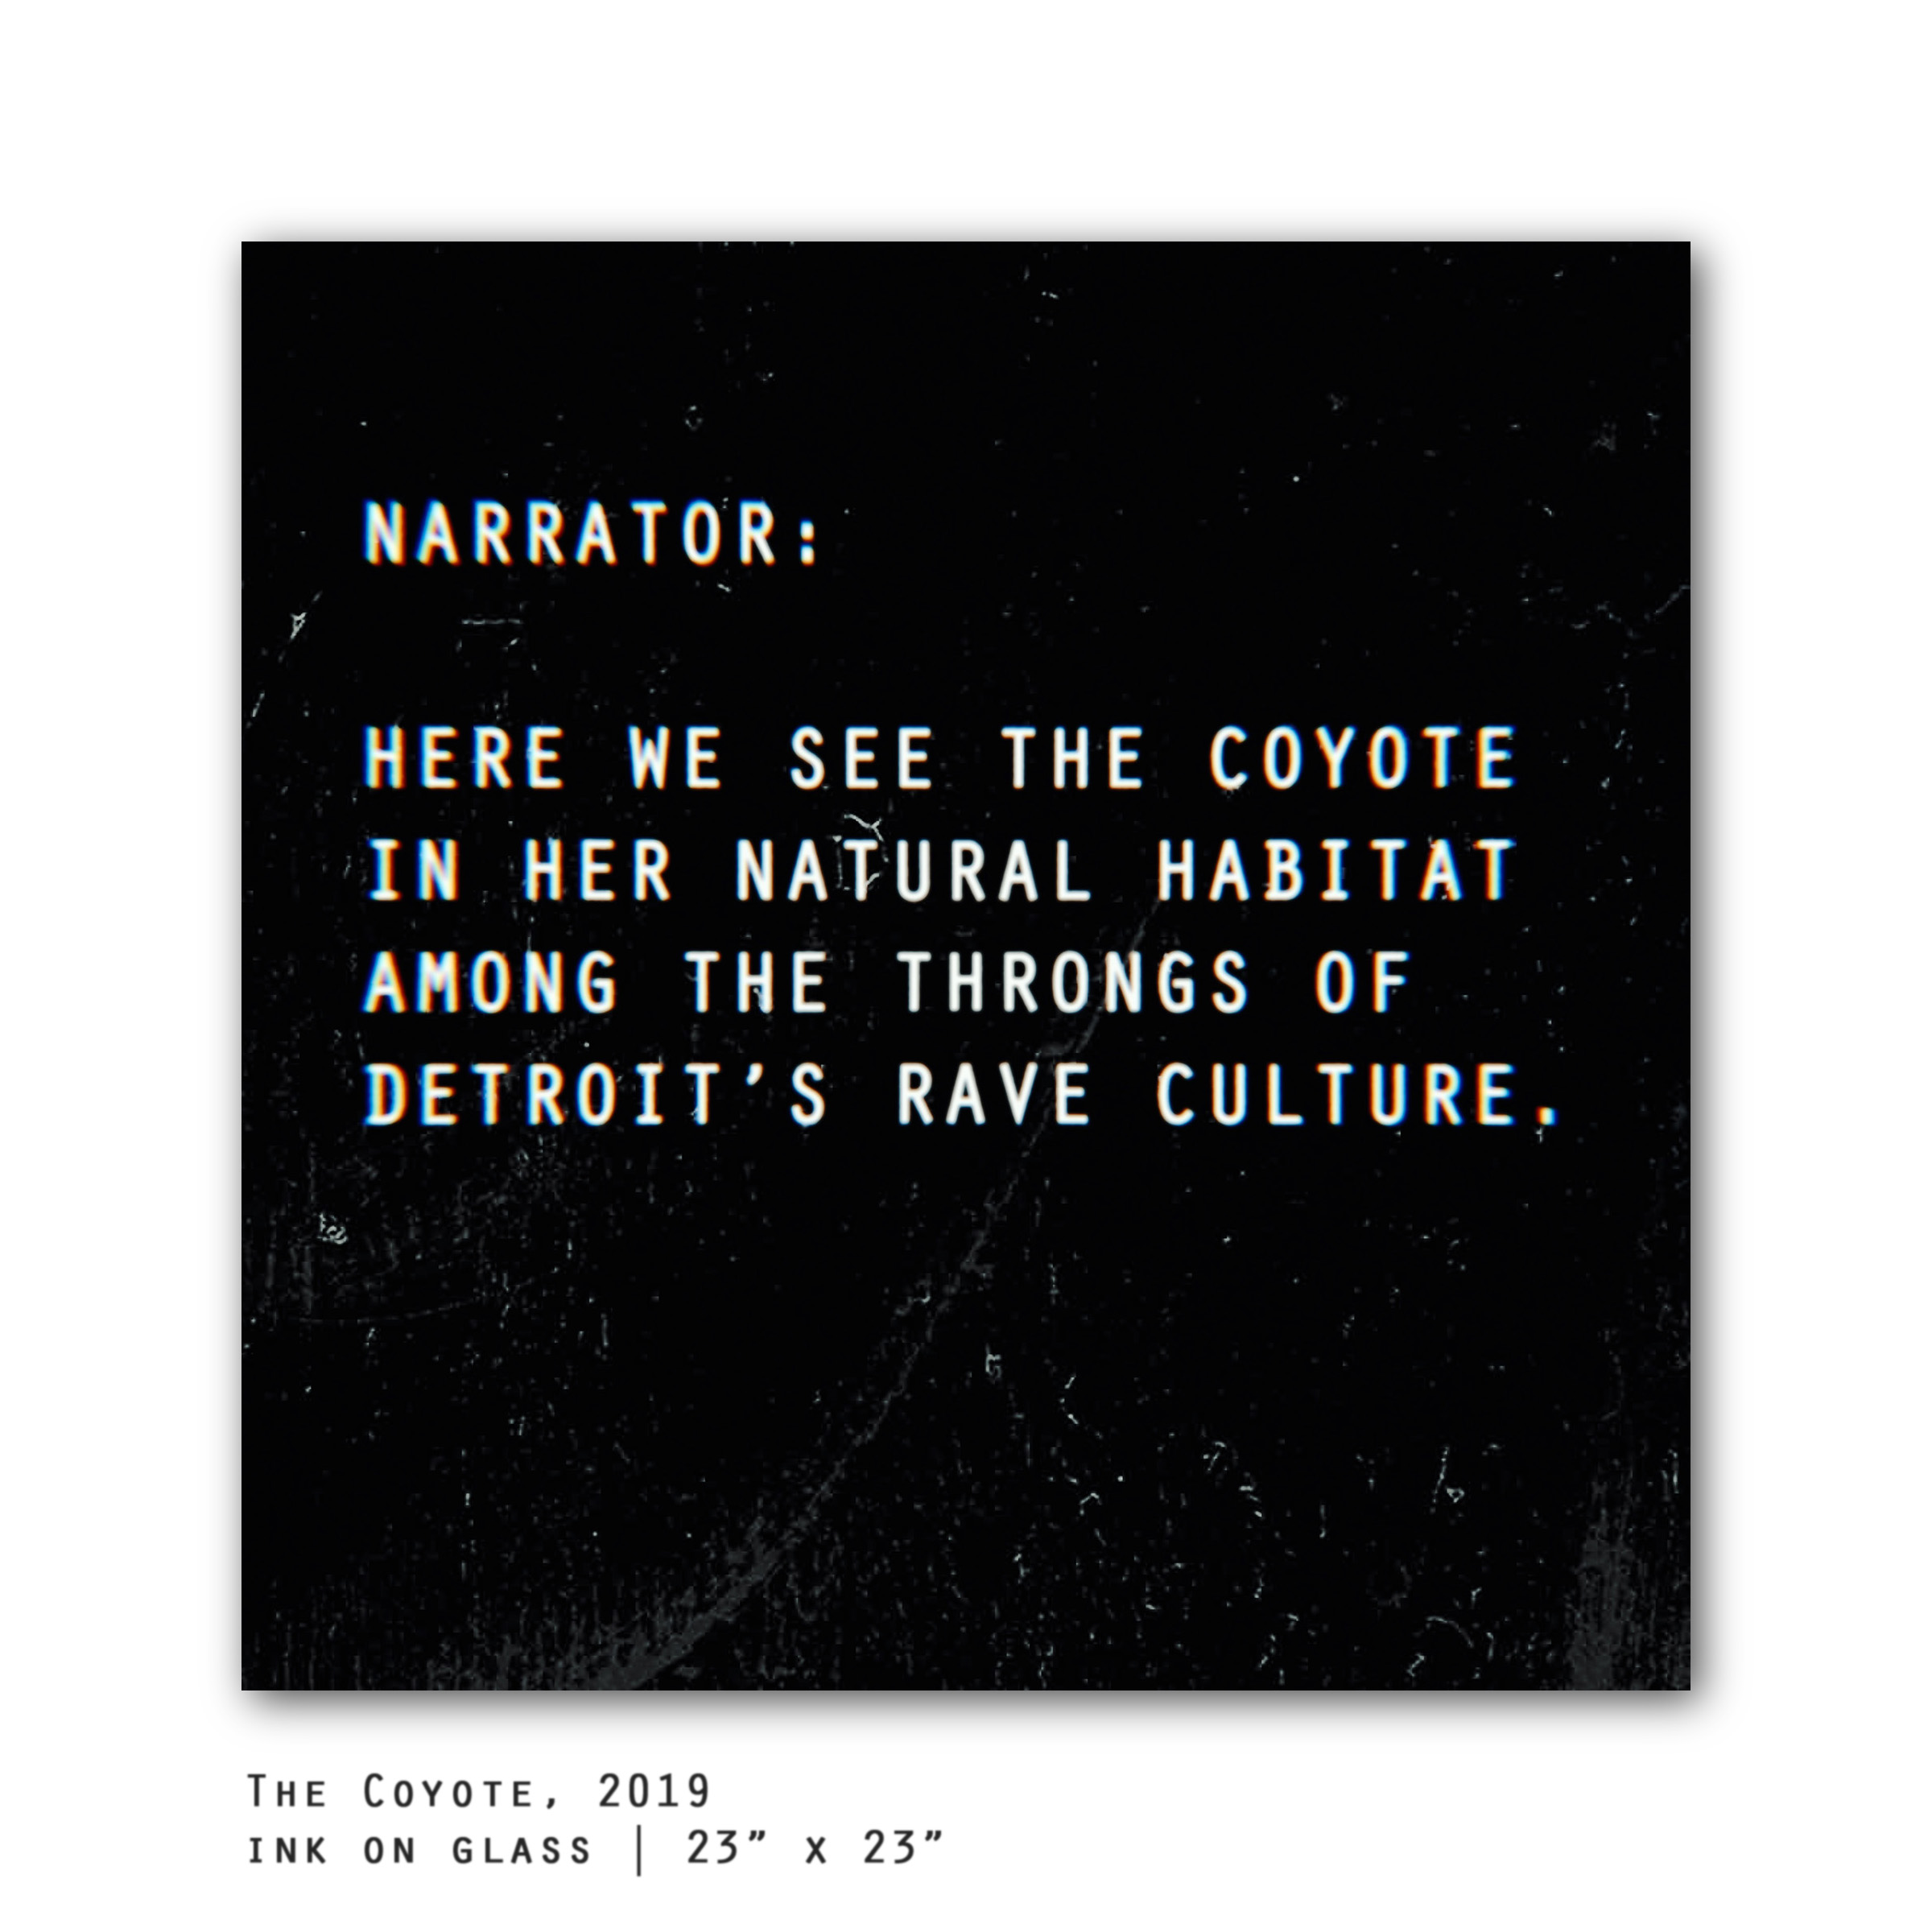 1_The_Coyote_text_with_shadow.jpg